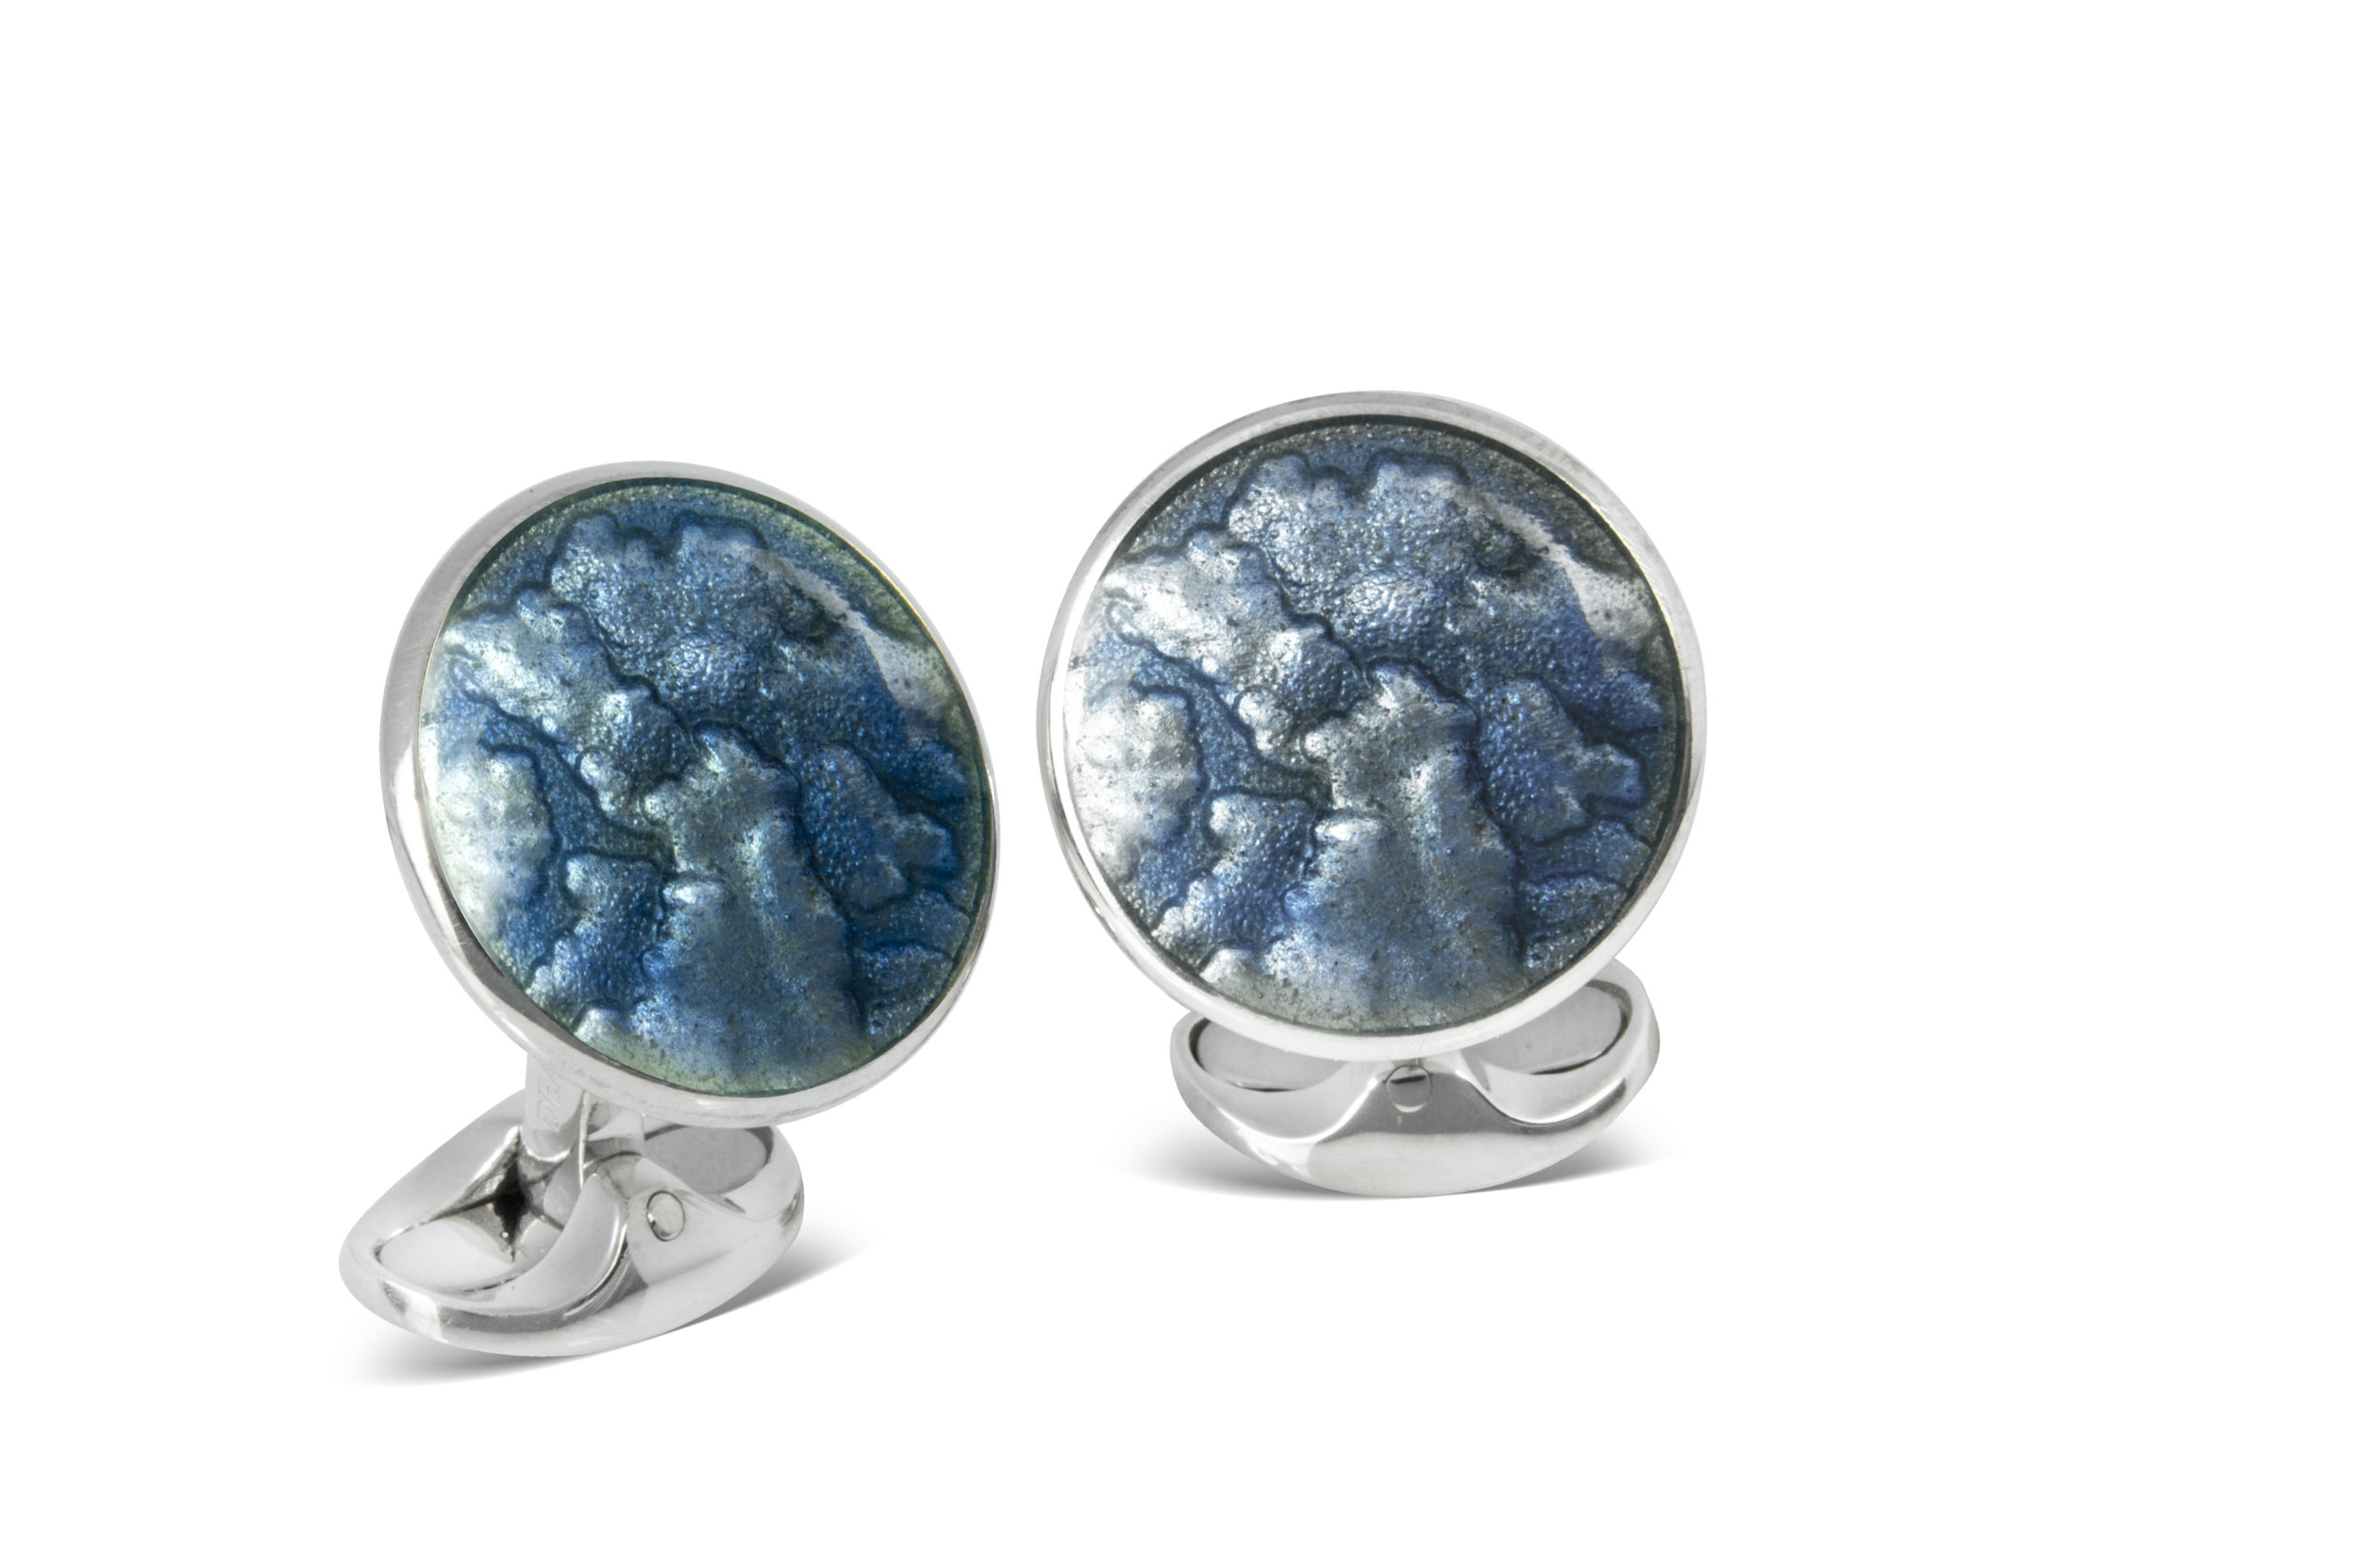 Deakin & Francis winter haze cufflinks - £425 - A truly rakish gent knows the importance of a decadent pair of cuff links. Available to order now at Deakin & Francis